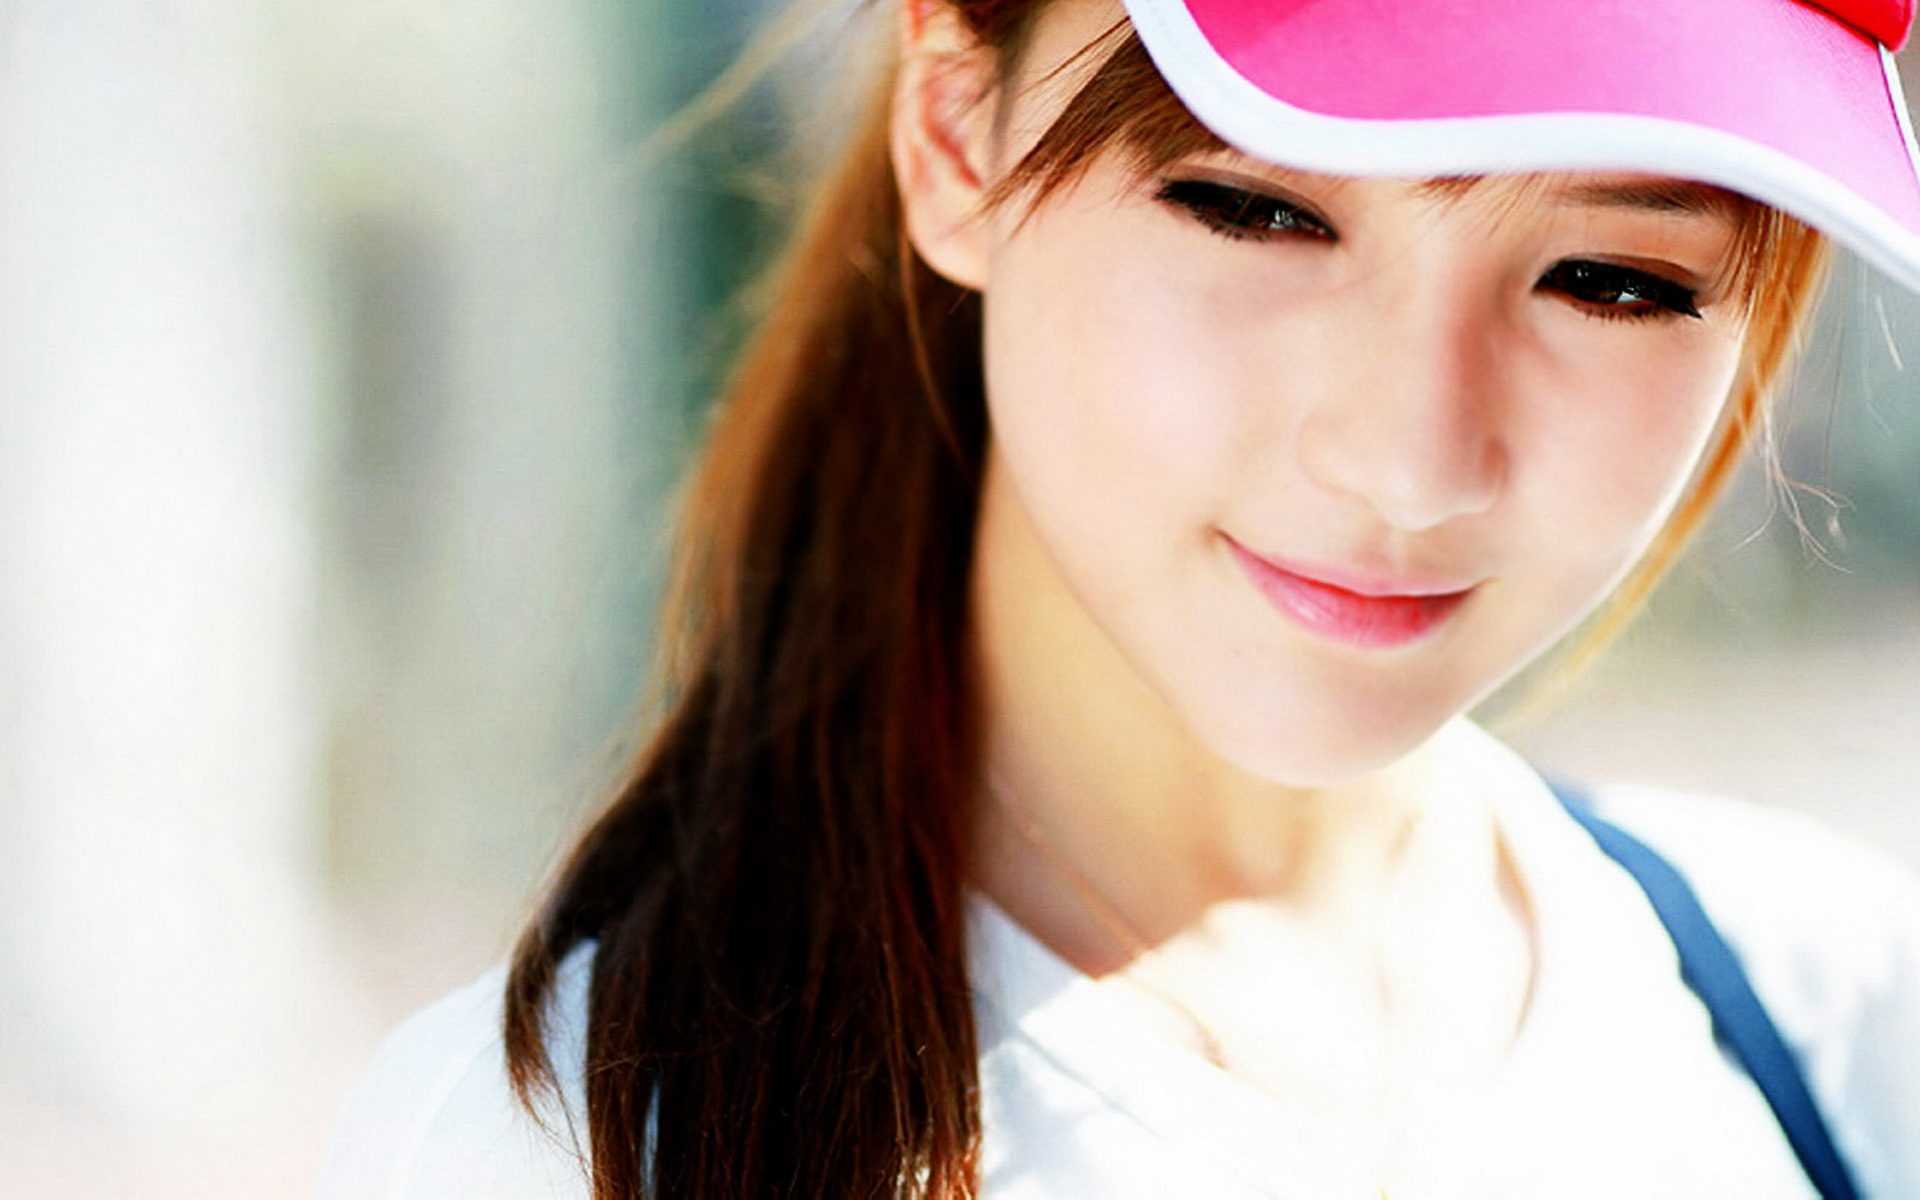 Wallpaper's Collection: «Cute Girls Wallpapers»